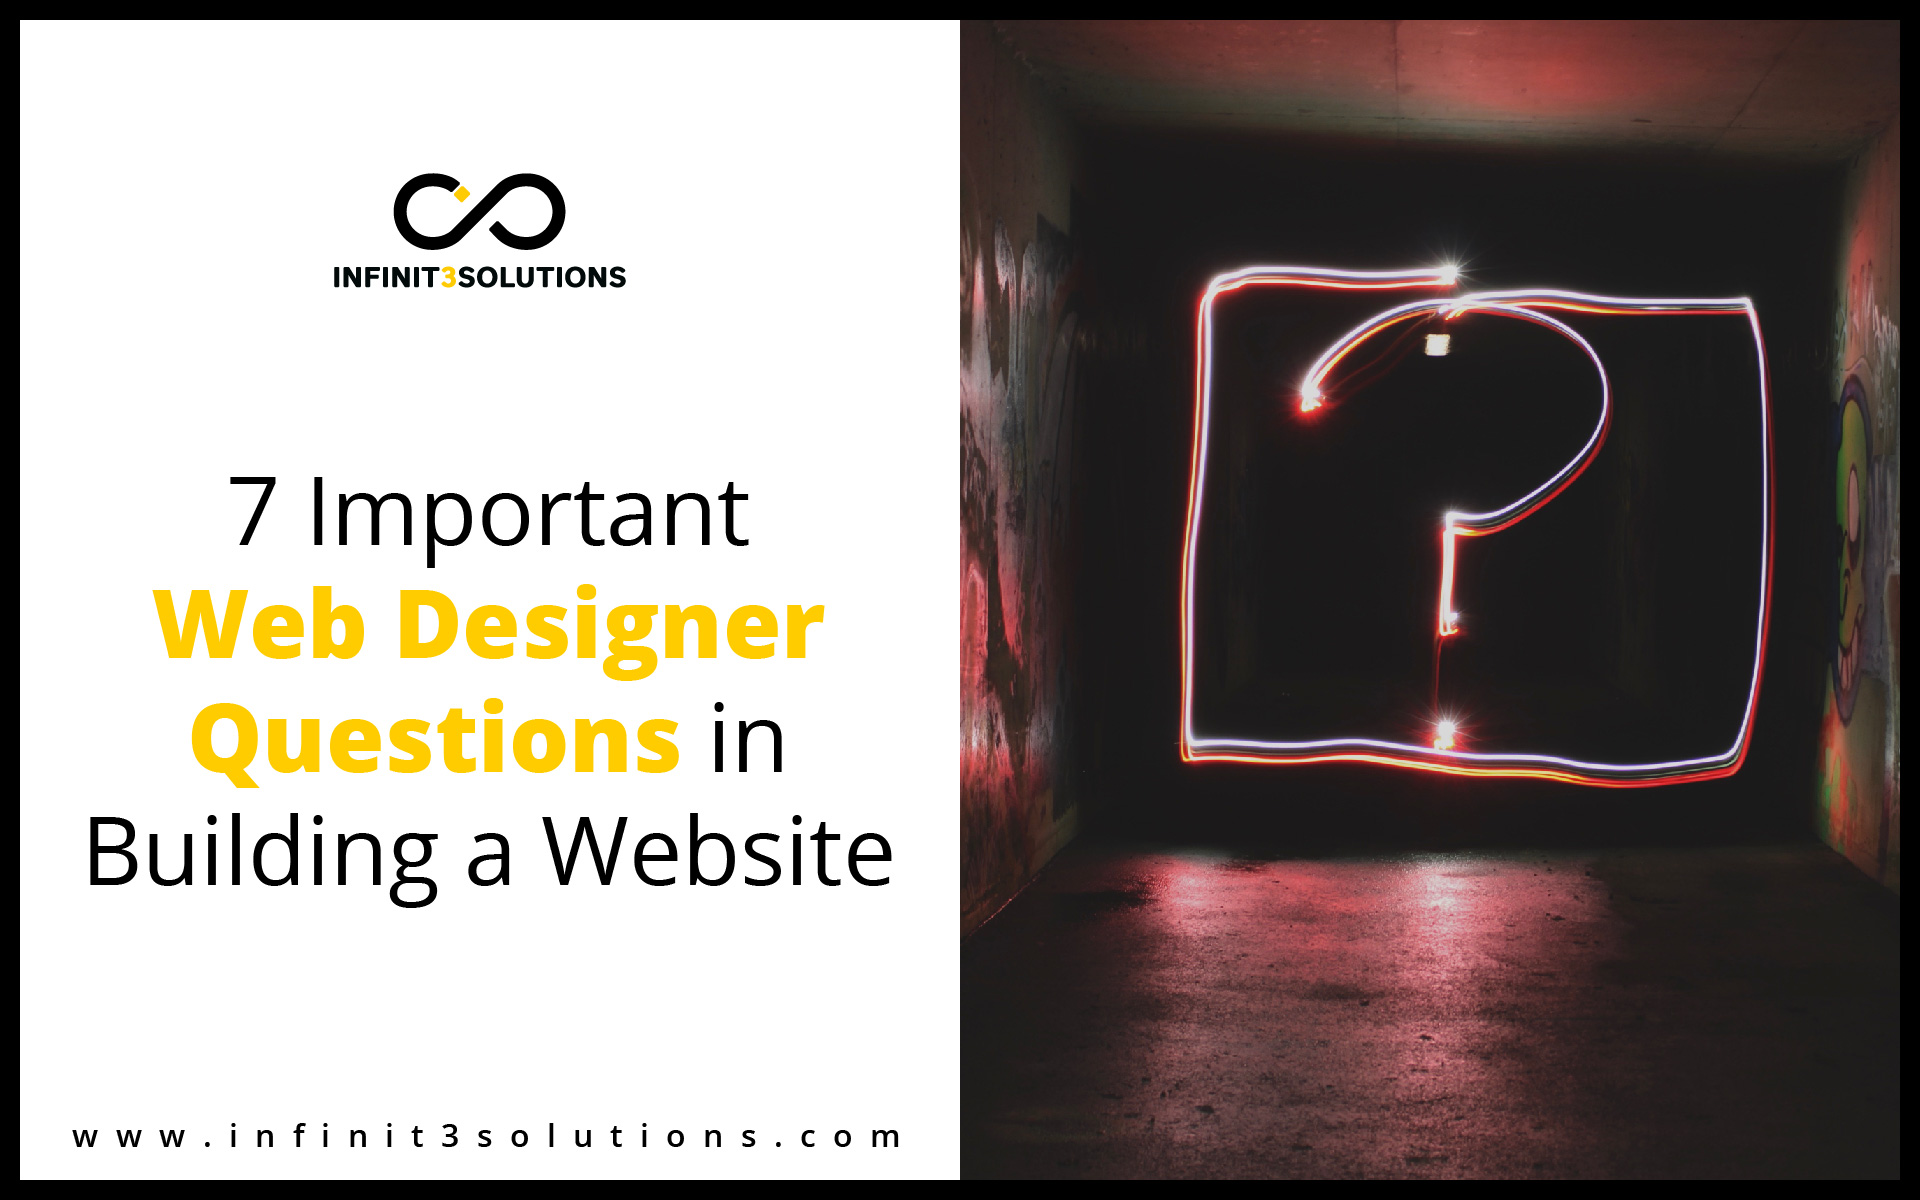 Important Web Designer Questions in Building a Website